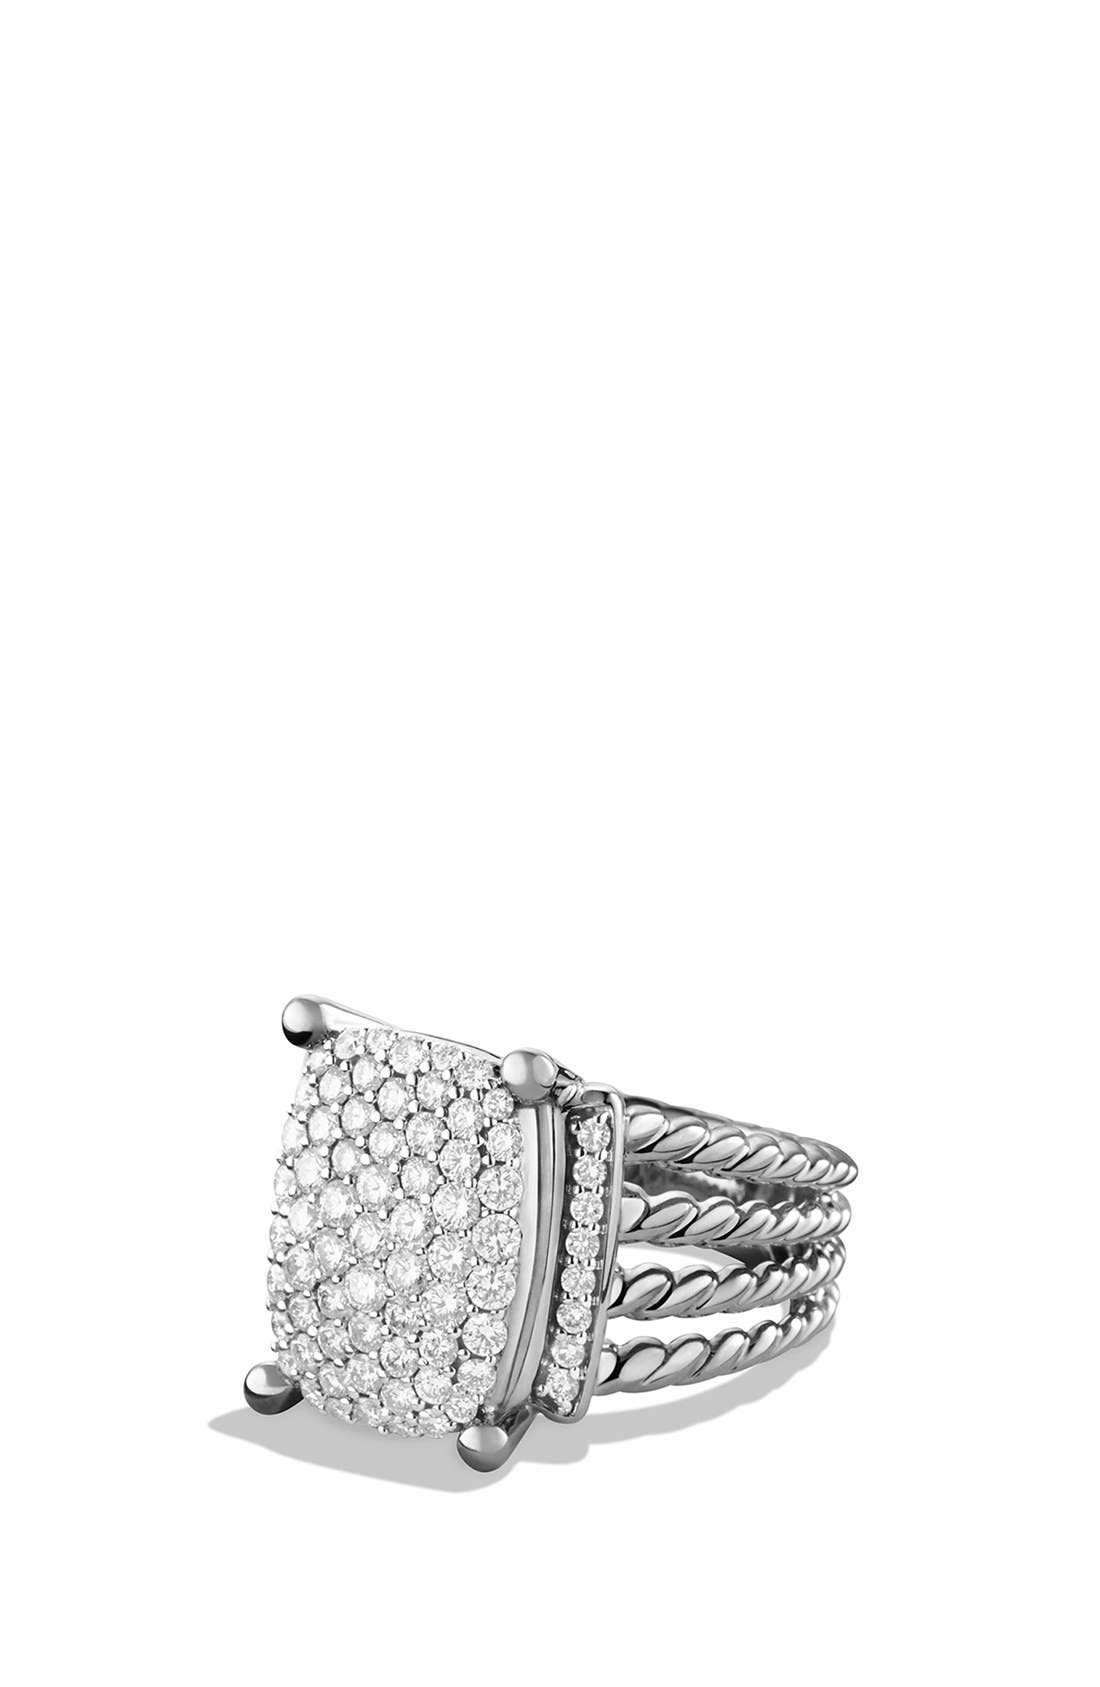 DAVID YURMAN,                             'Wheaton' Ring with Diamonds,                             Main thumbnail 1, color,                             DIAMOND